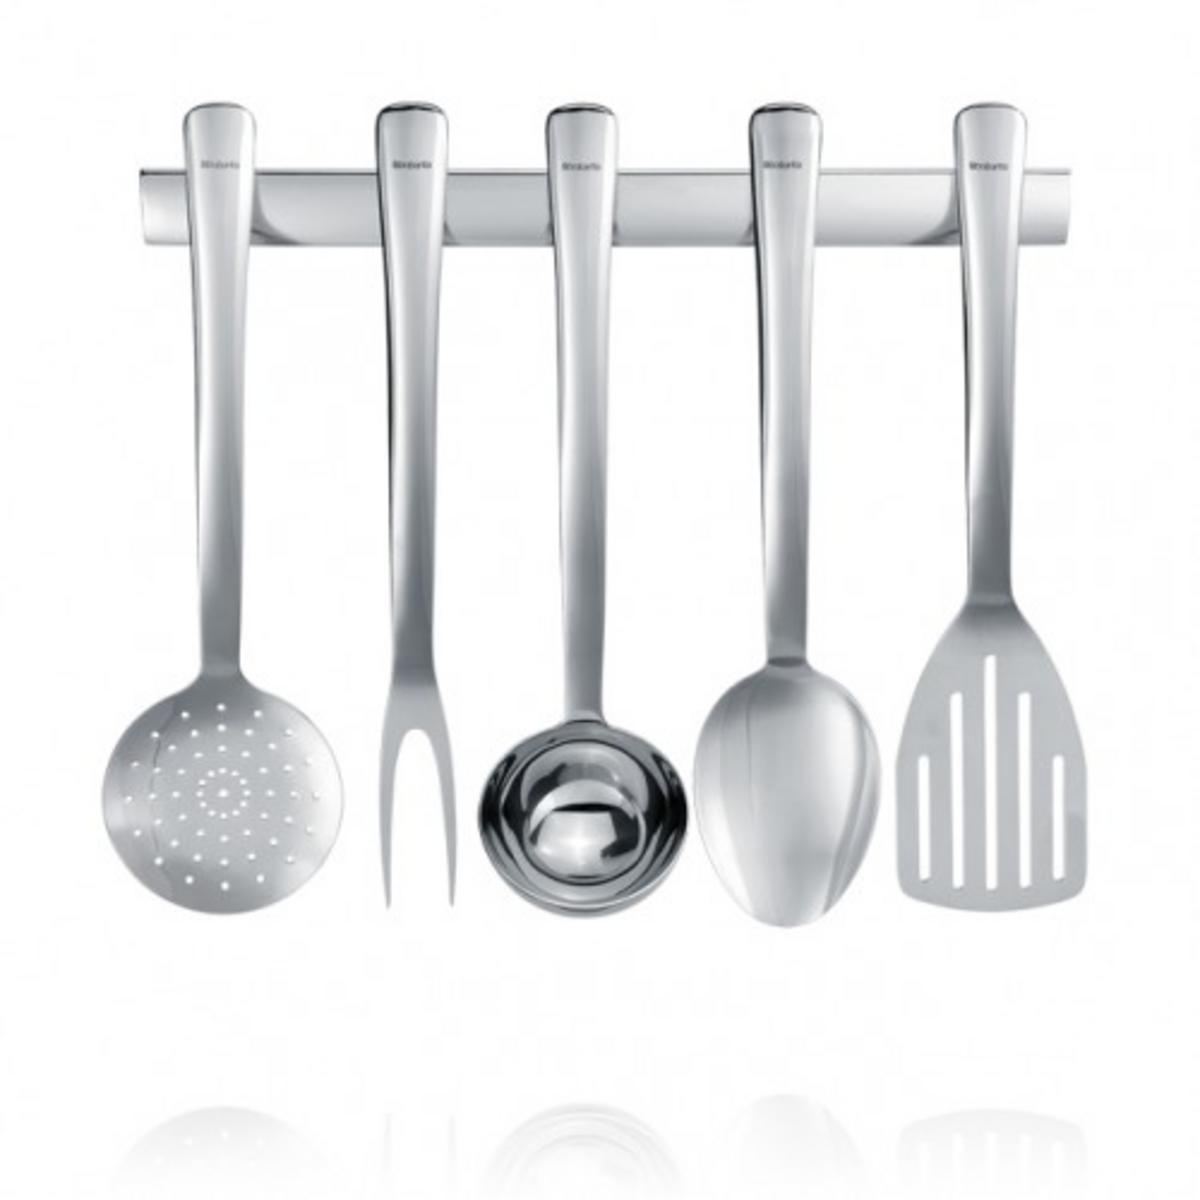 Kitchen design gallery list of kitchen utensils with pictures for Kitchen design utensils